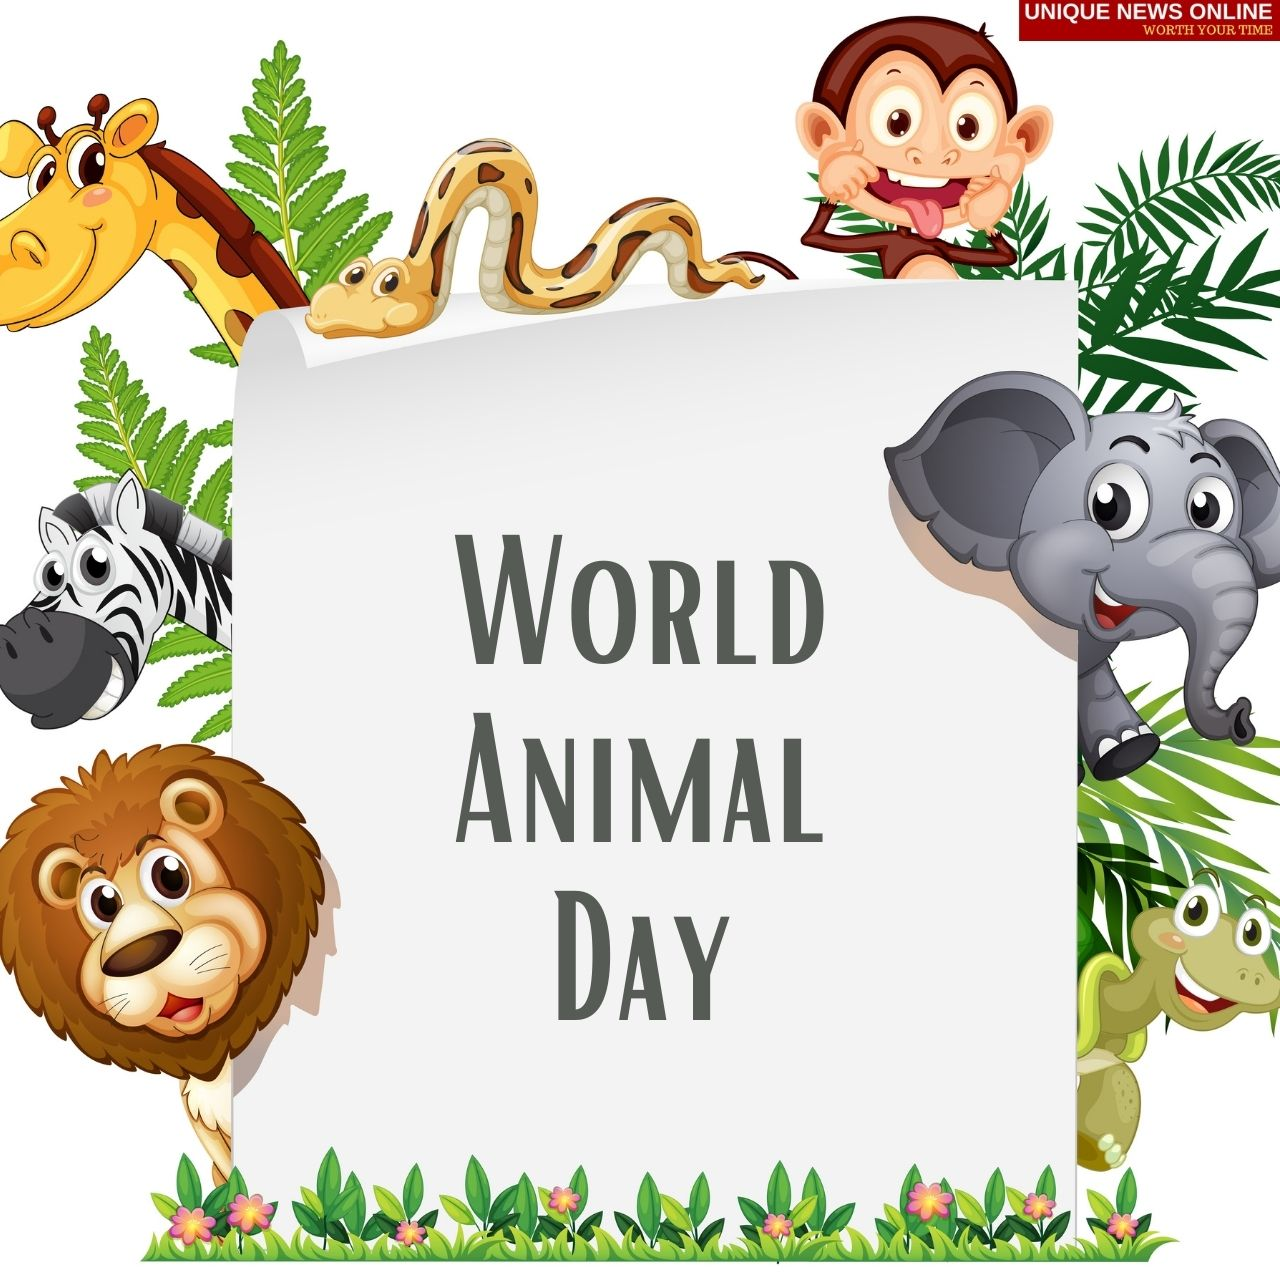 World Animal Day 2021 Quotes, Wishes, Poster, HD Images, and Messages to Create awareness